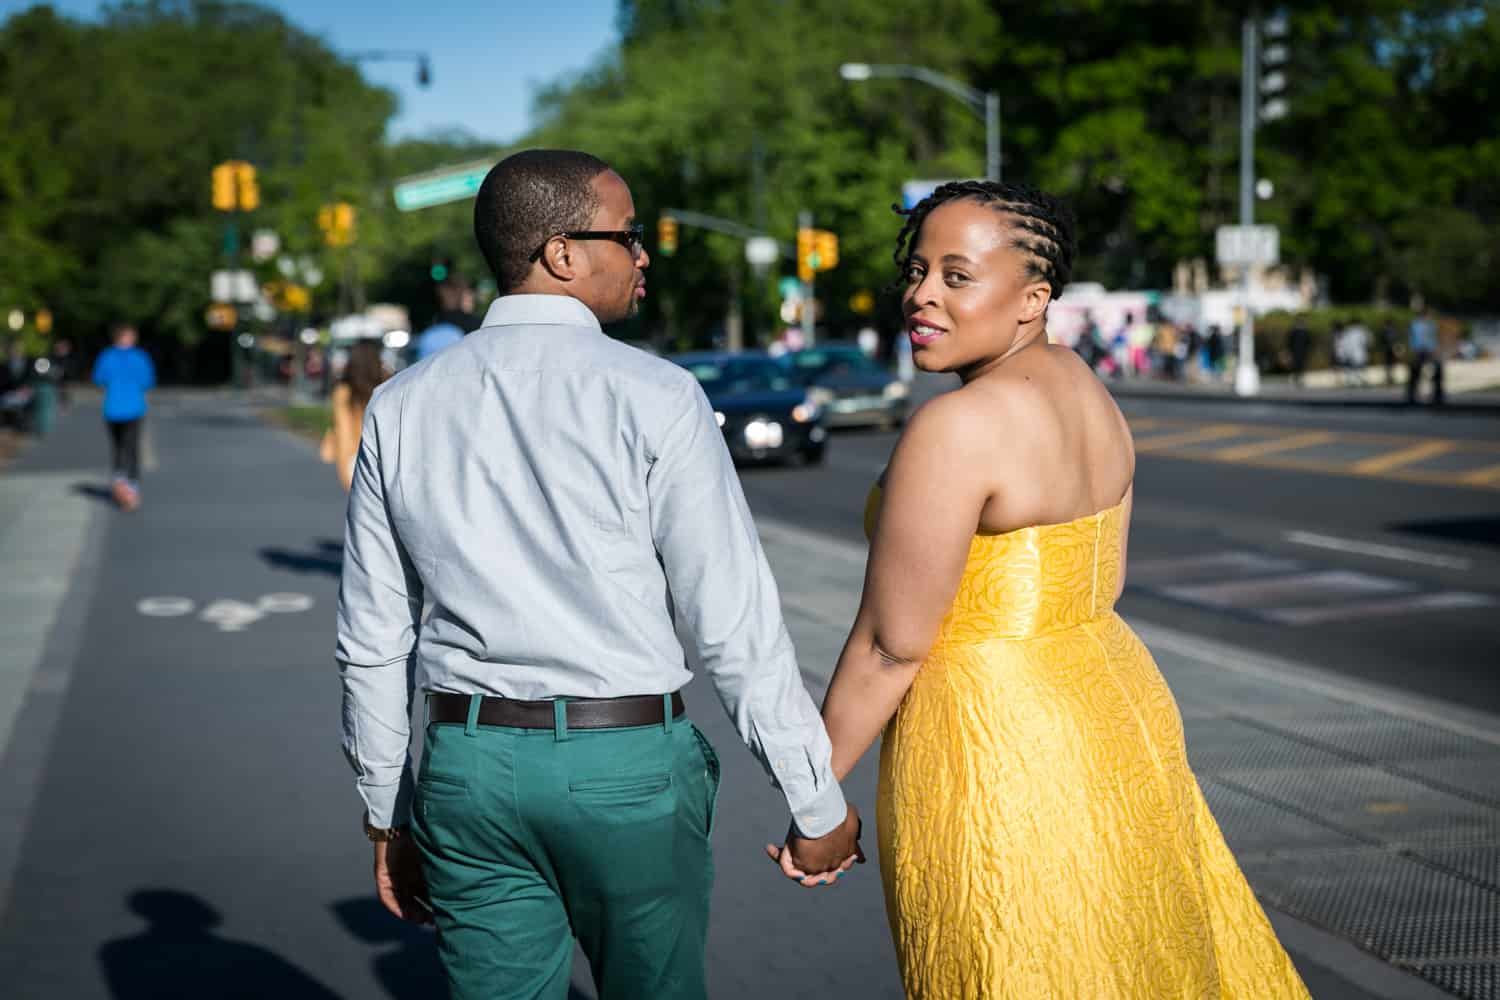 Couple holding hands and walking down sidewalk and woman looking over shoulder